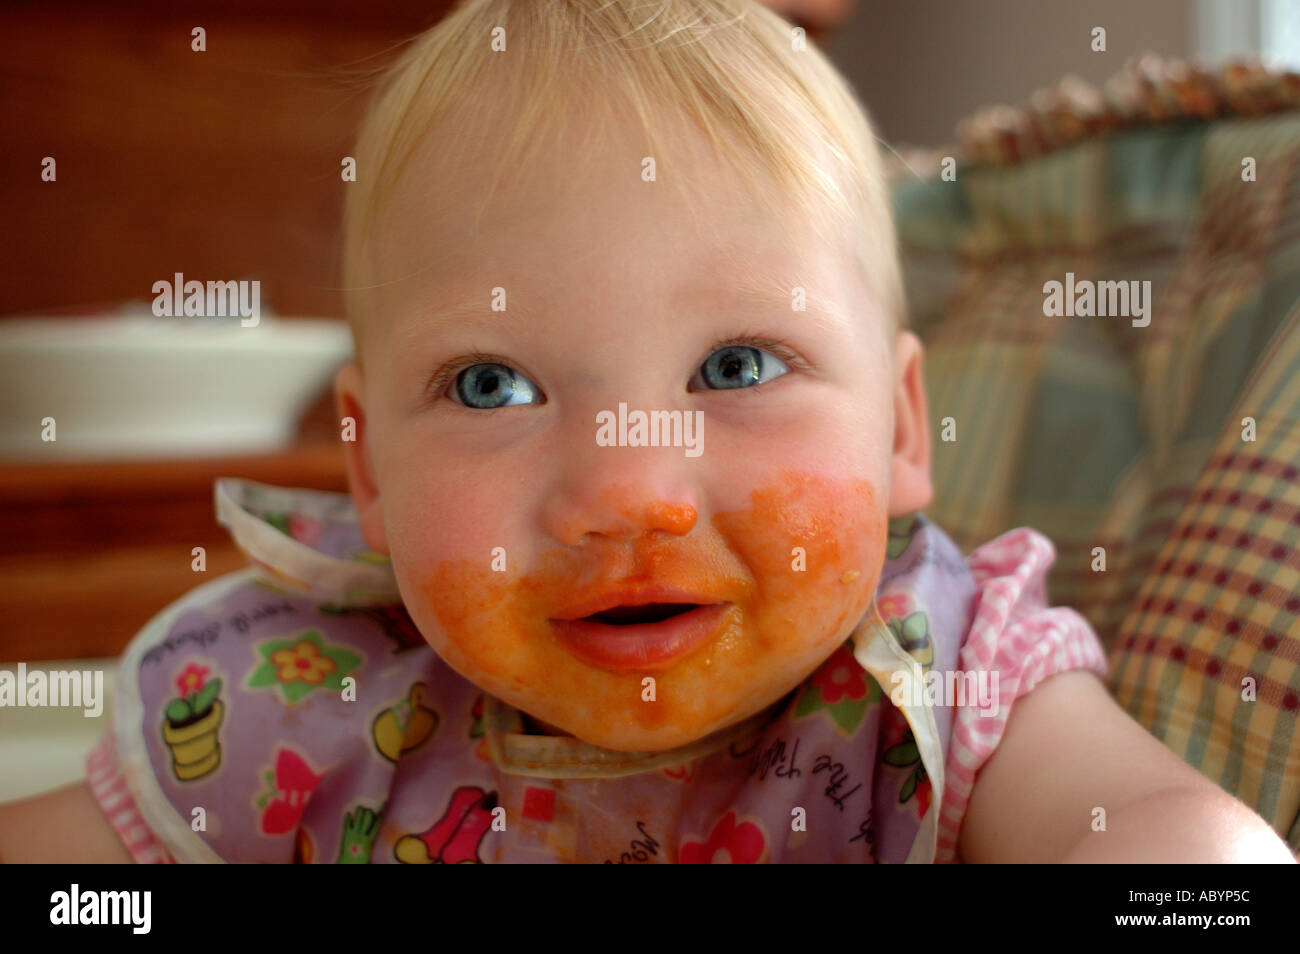 baby toddler child one 1 eating feeding eat feed lunch supper dinner snack sauce tomato sauce highchair high chair tray messy t - Stock Image